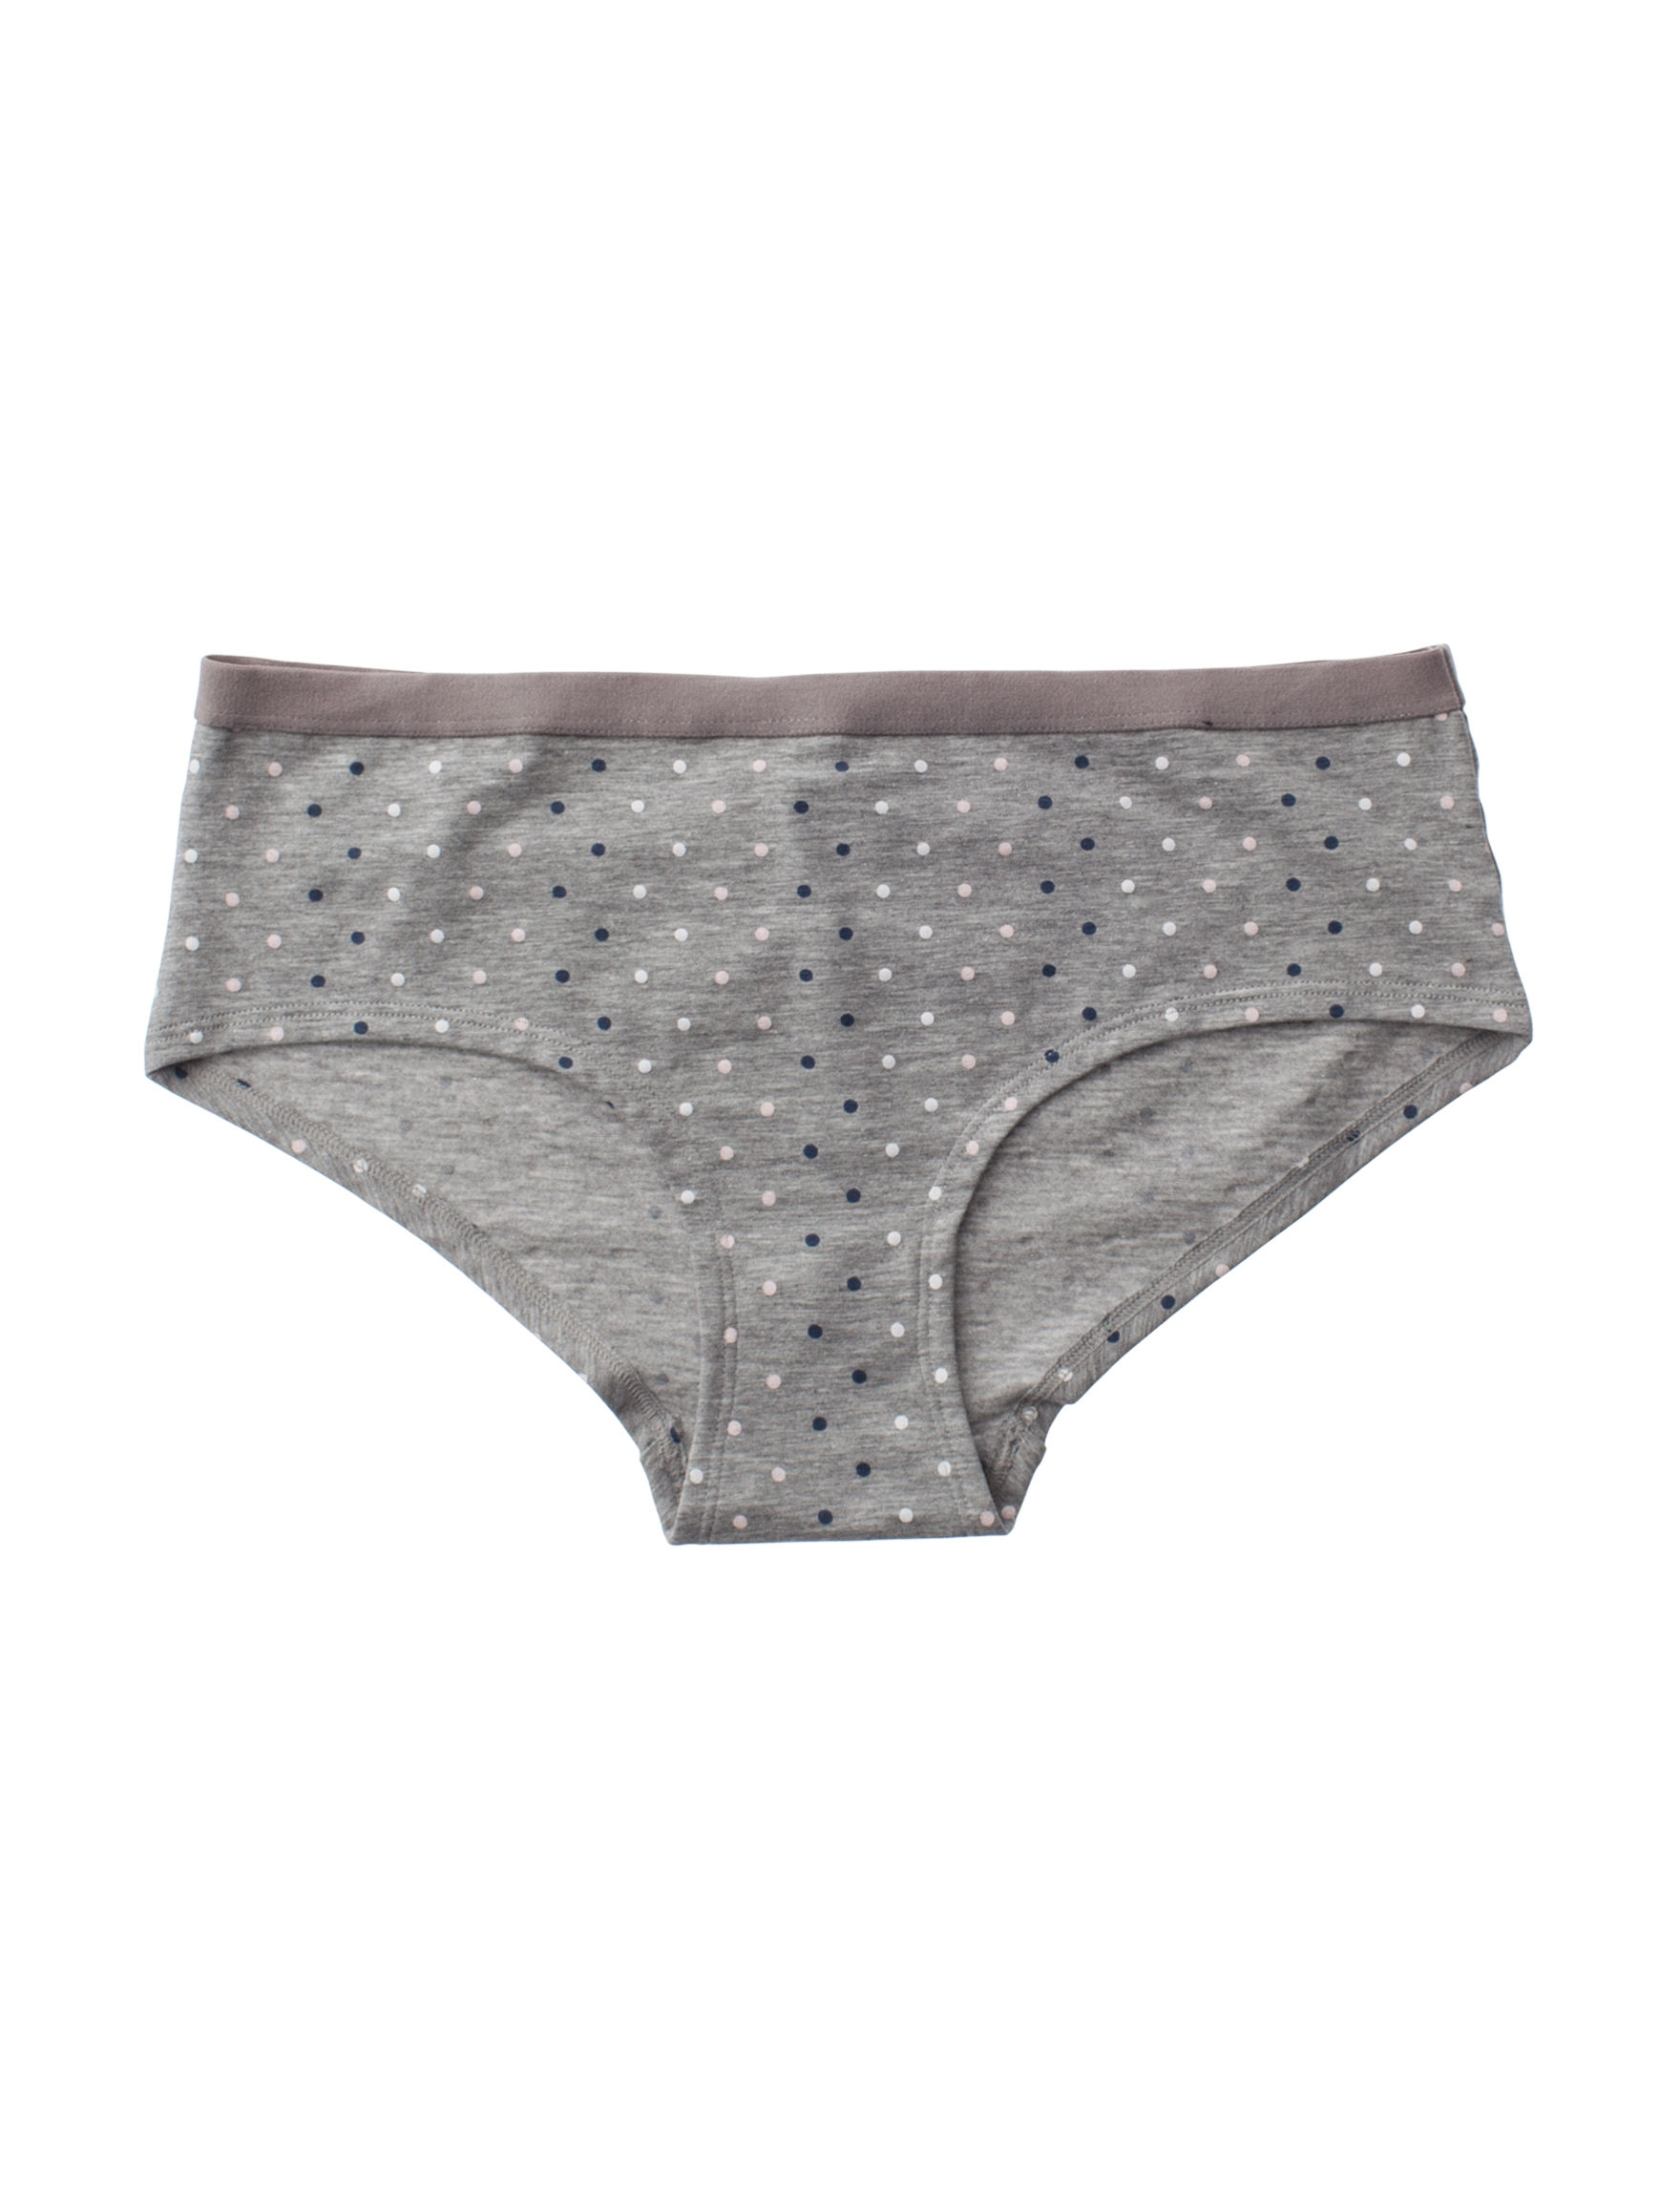 International Intimates Grey Panties Boyshort